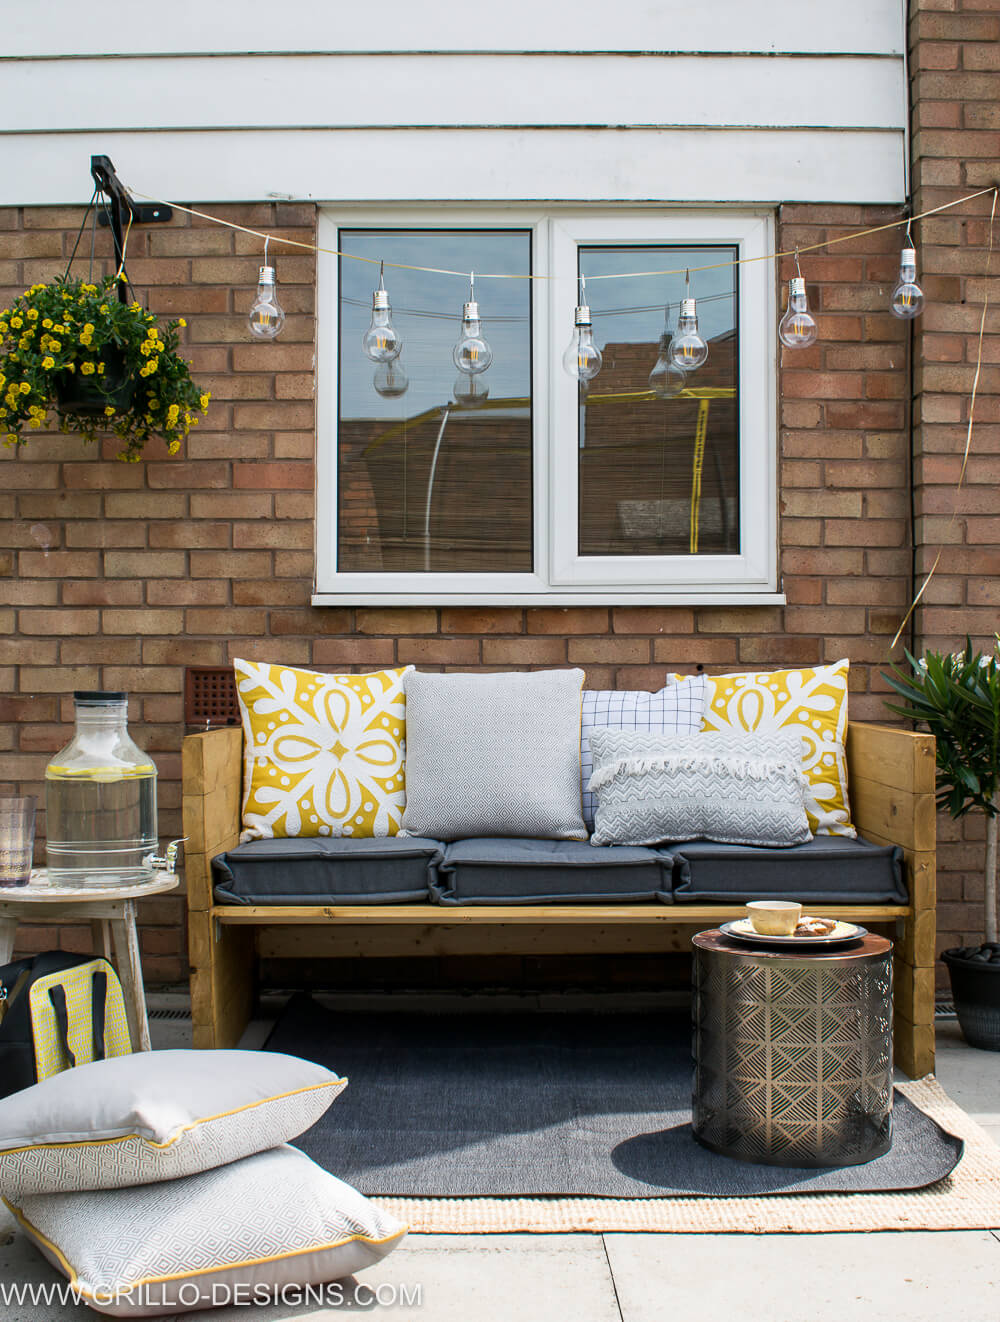 Easy tutorial on how to build an outdoor sofa / grillo designs